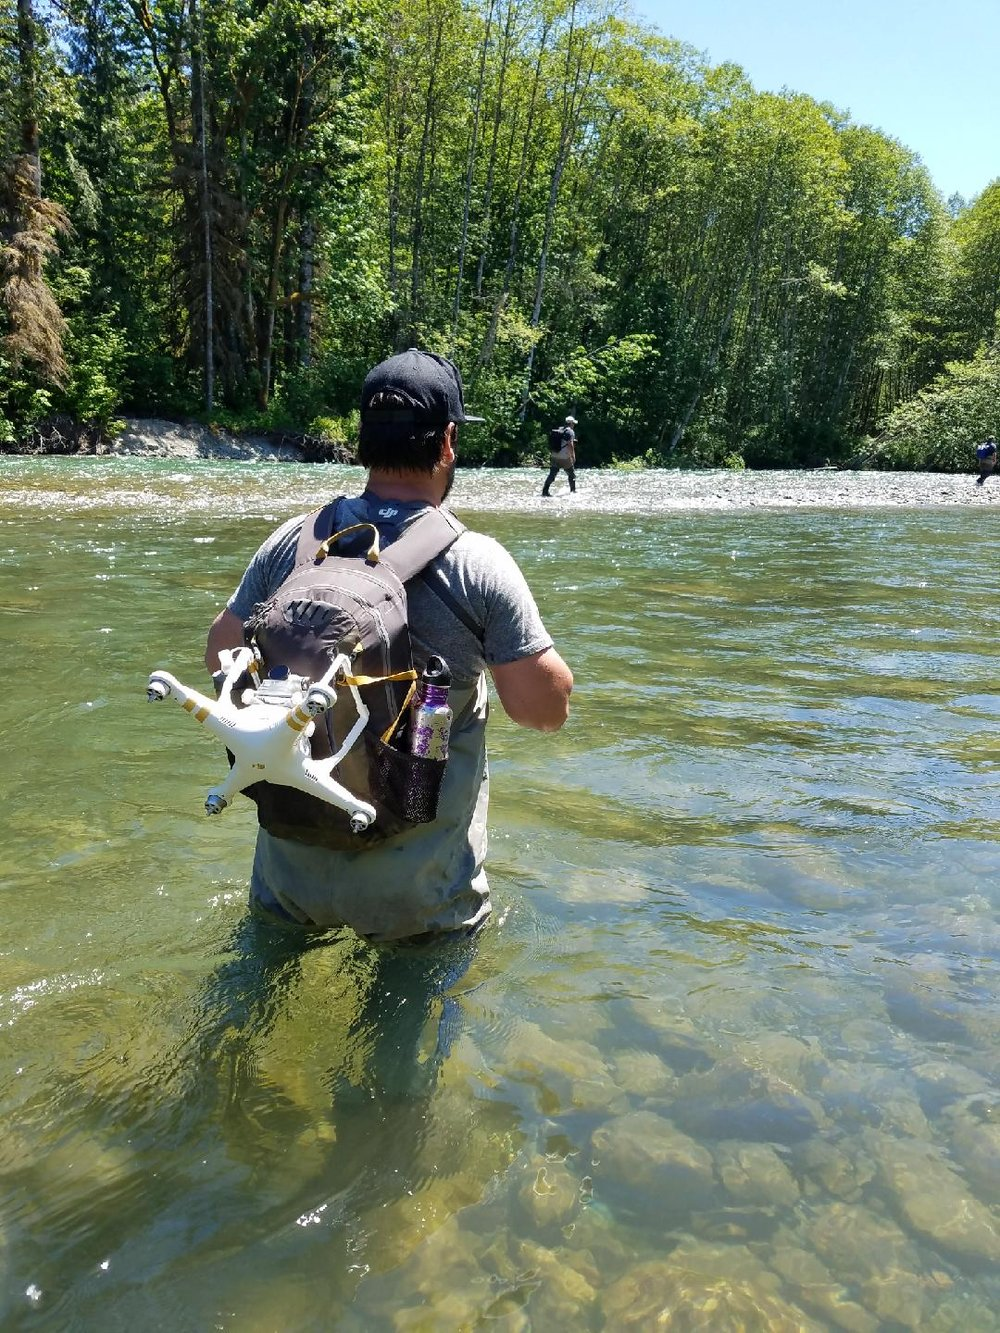 man wading through slow river with backpack and baseball cap